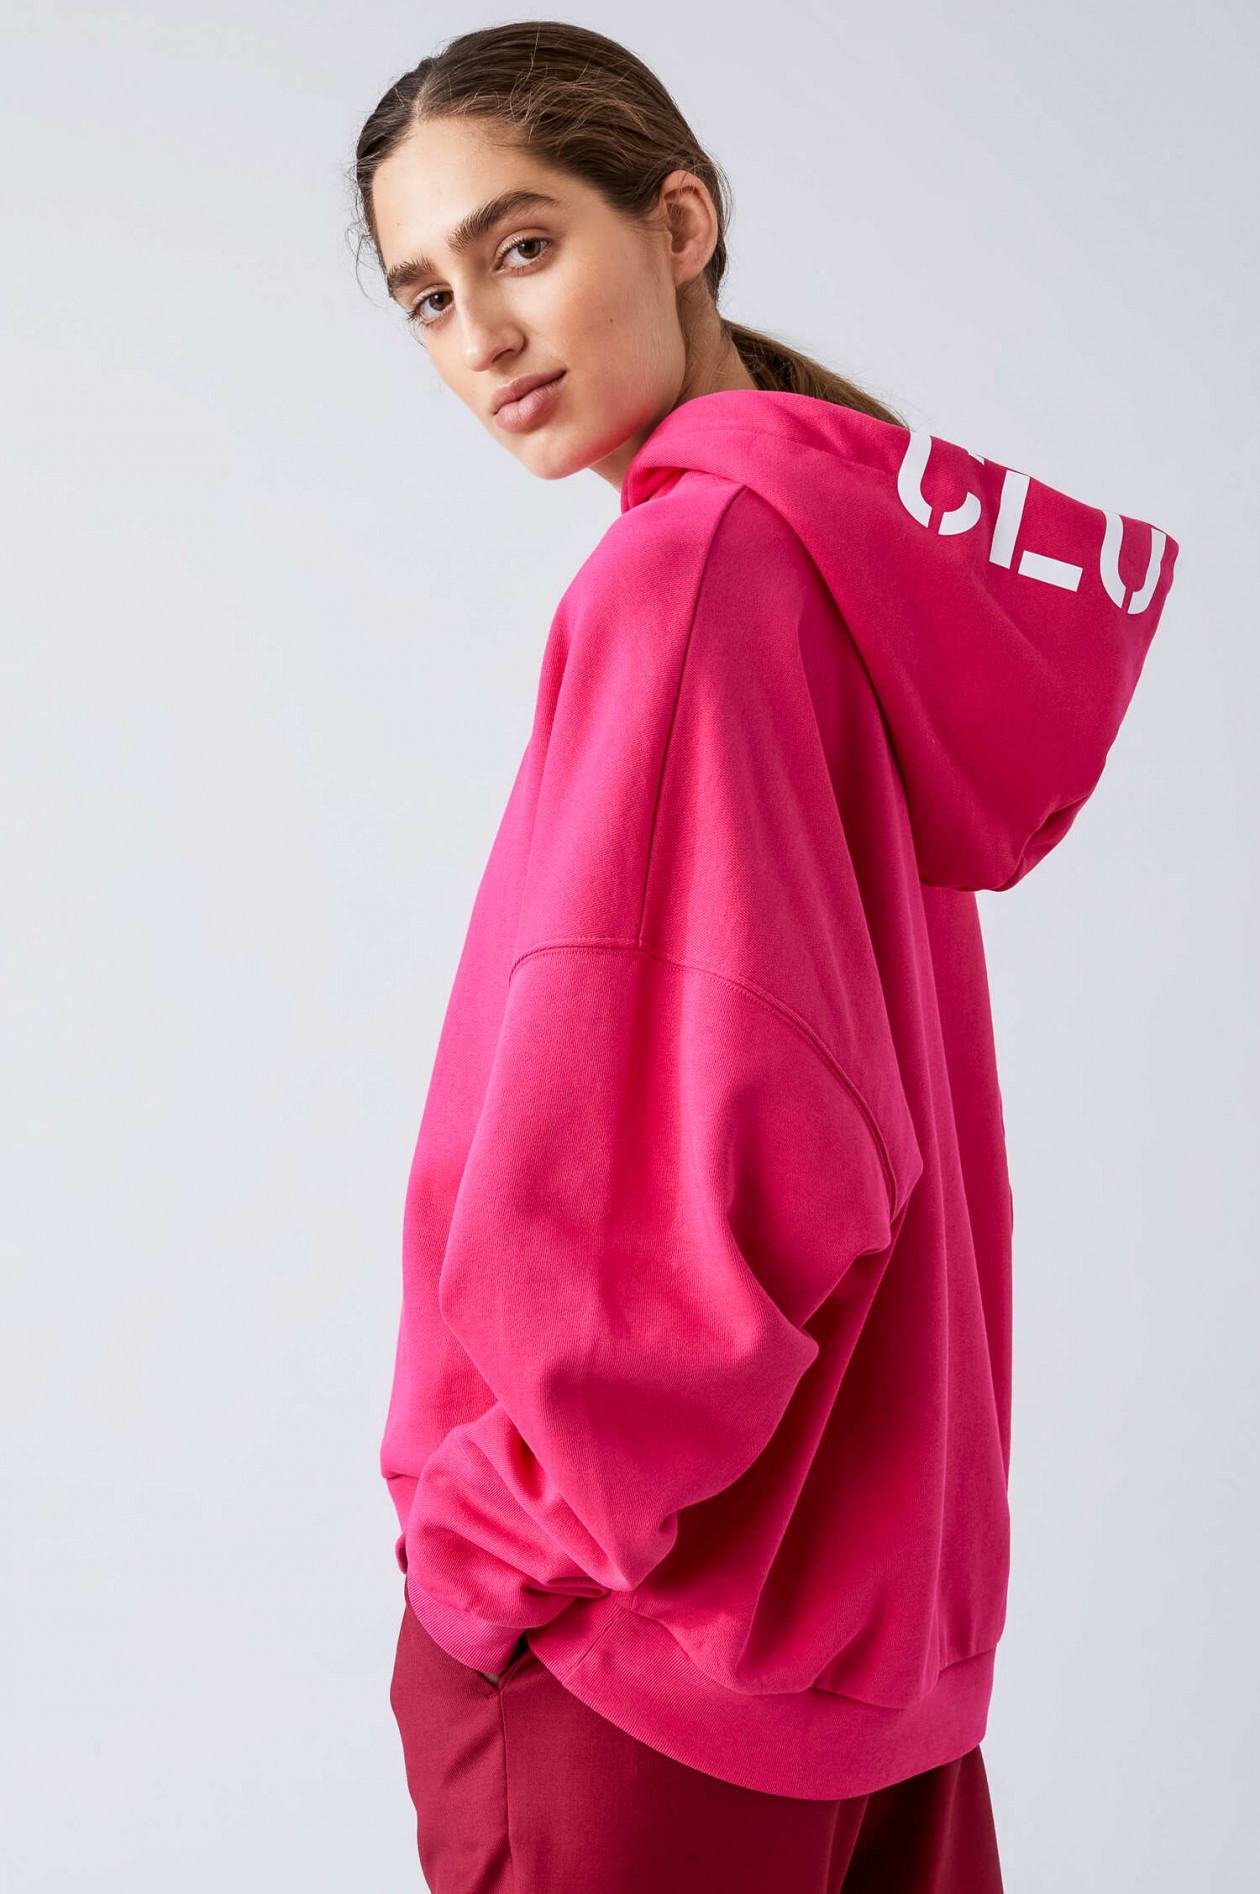 Closed Sweater in Pink | GRUENER.AT